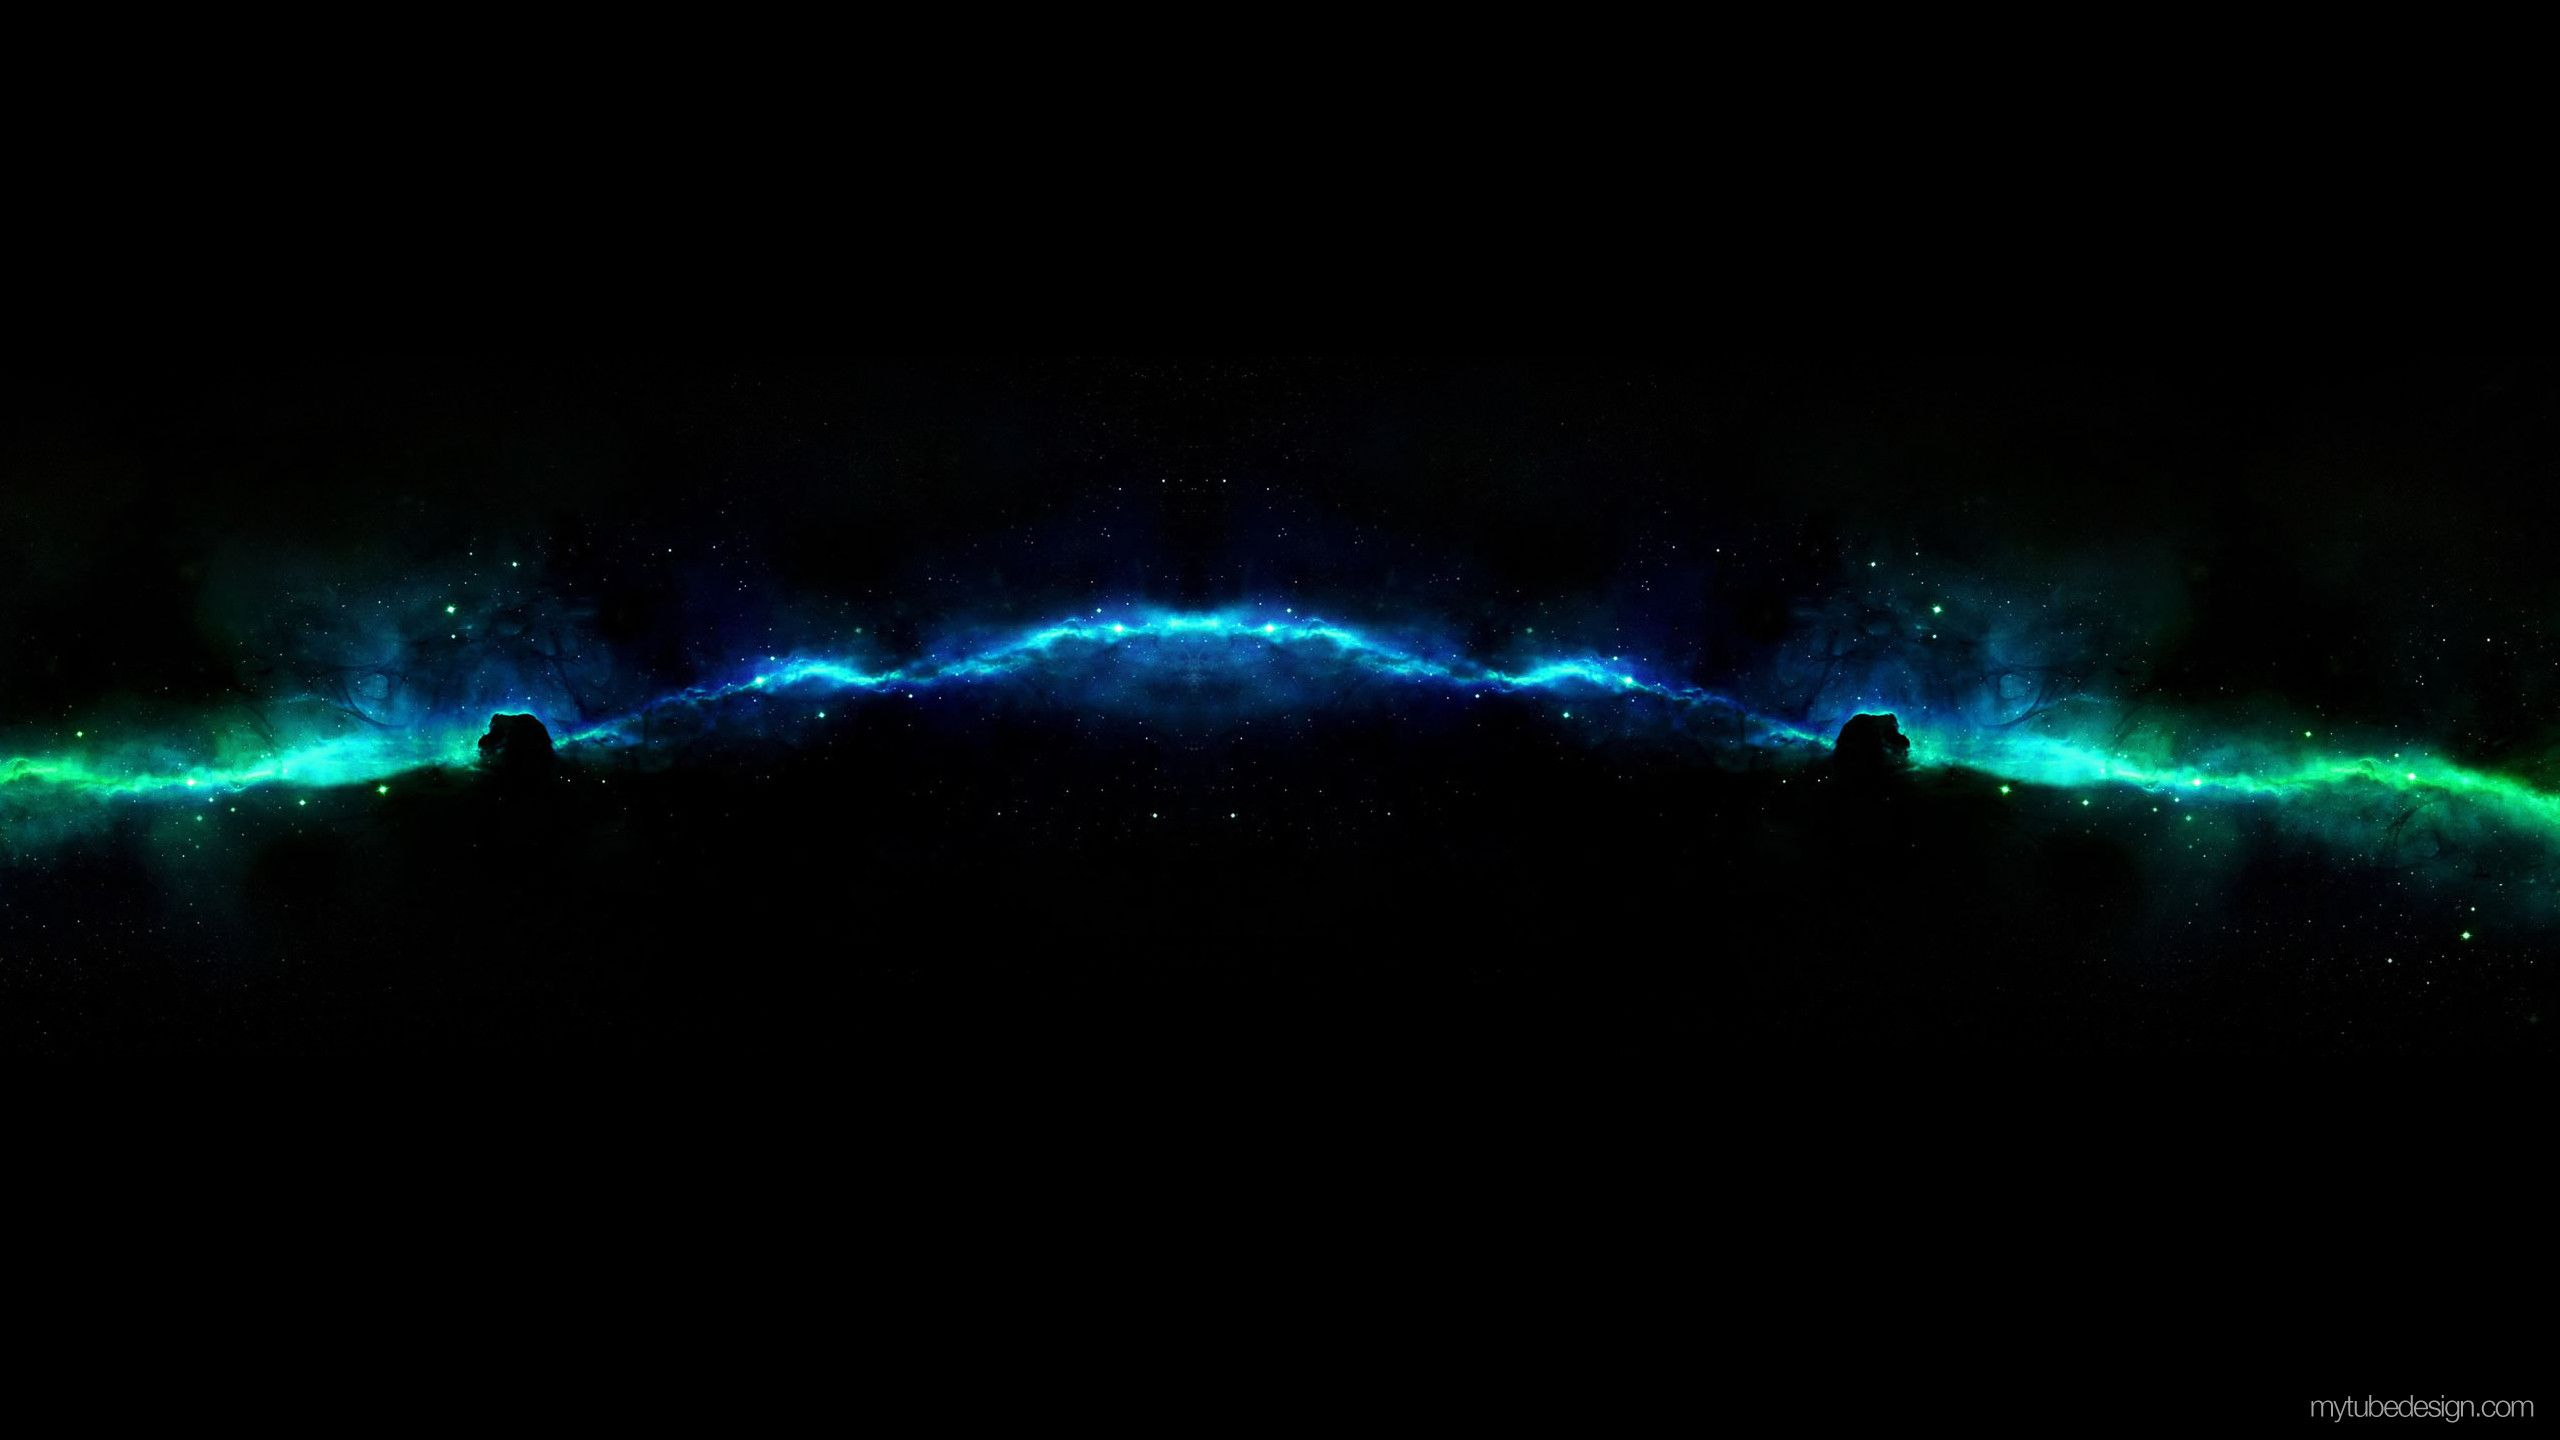 Black And Blue Youtube Channel Art - HD Wallpaper